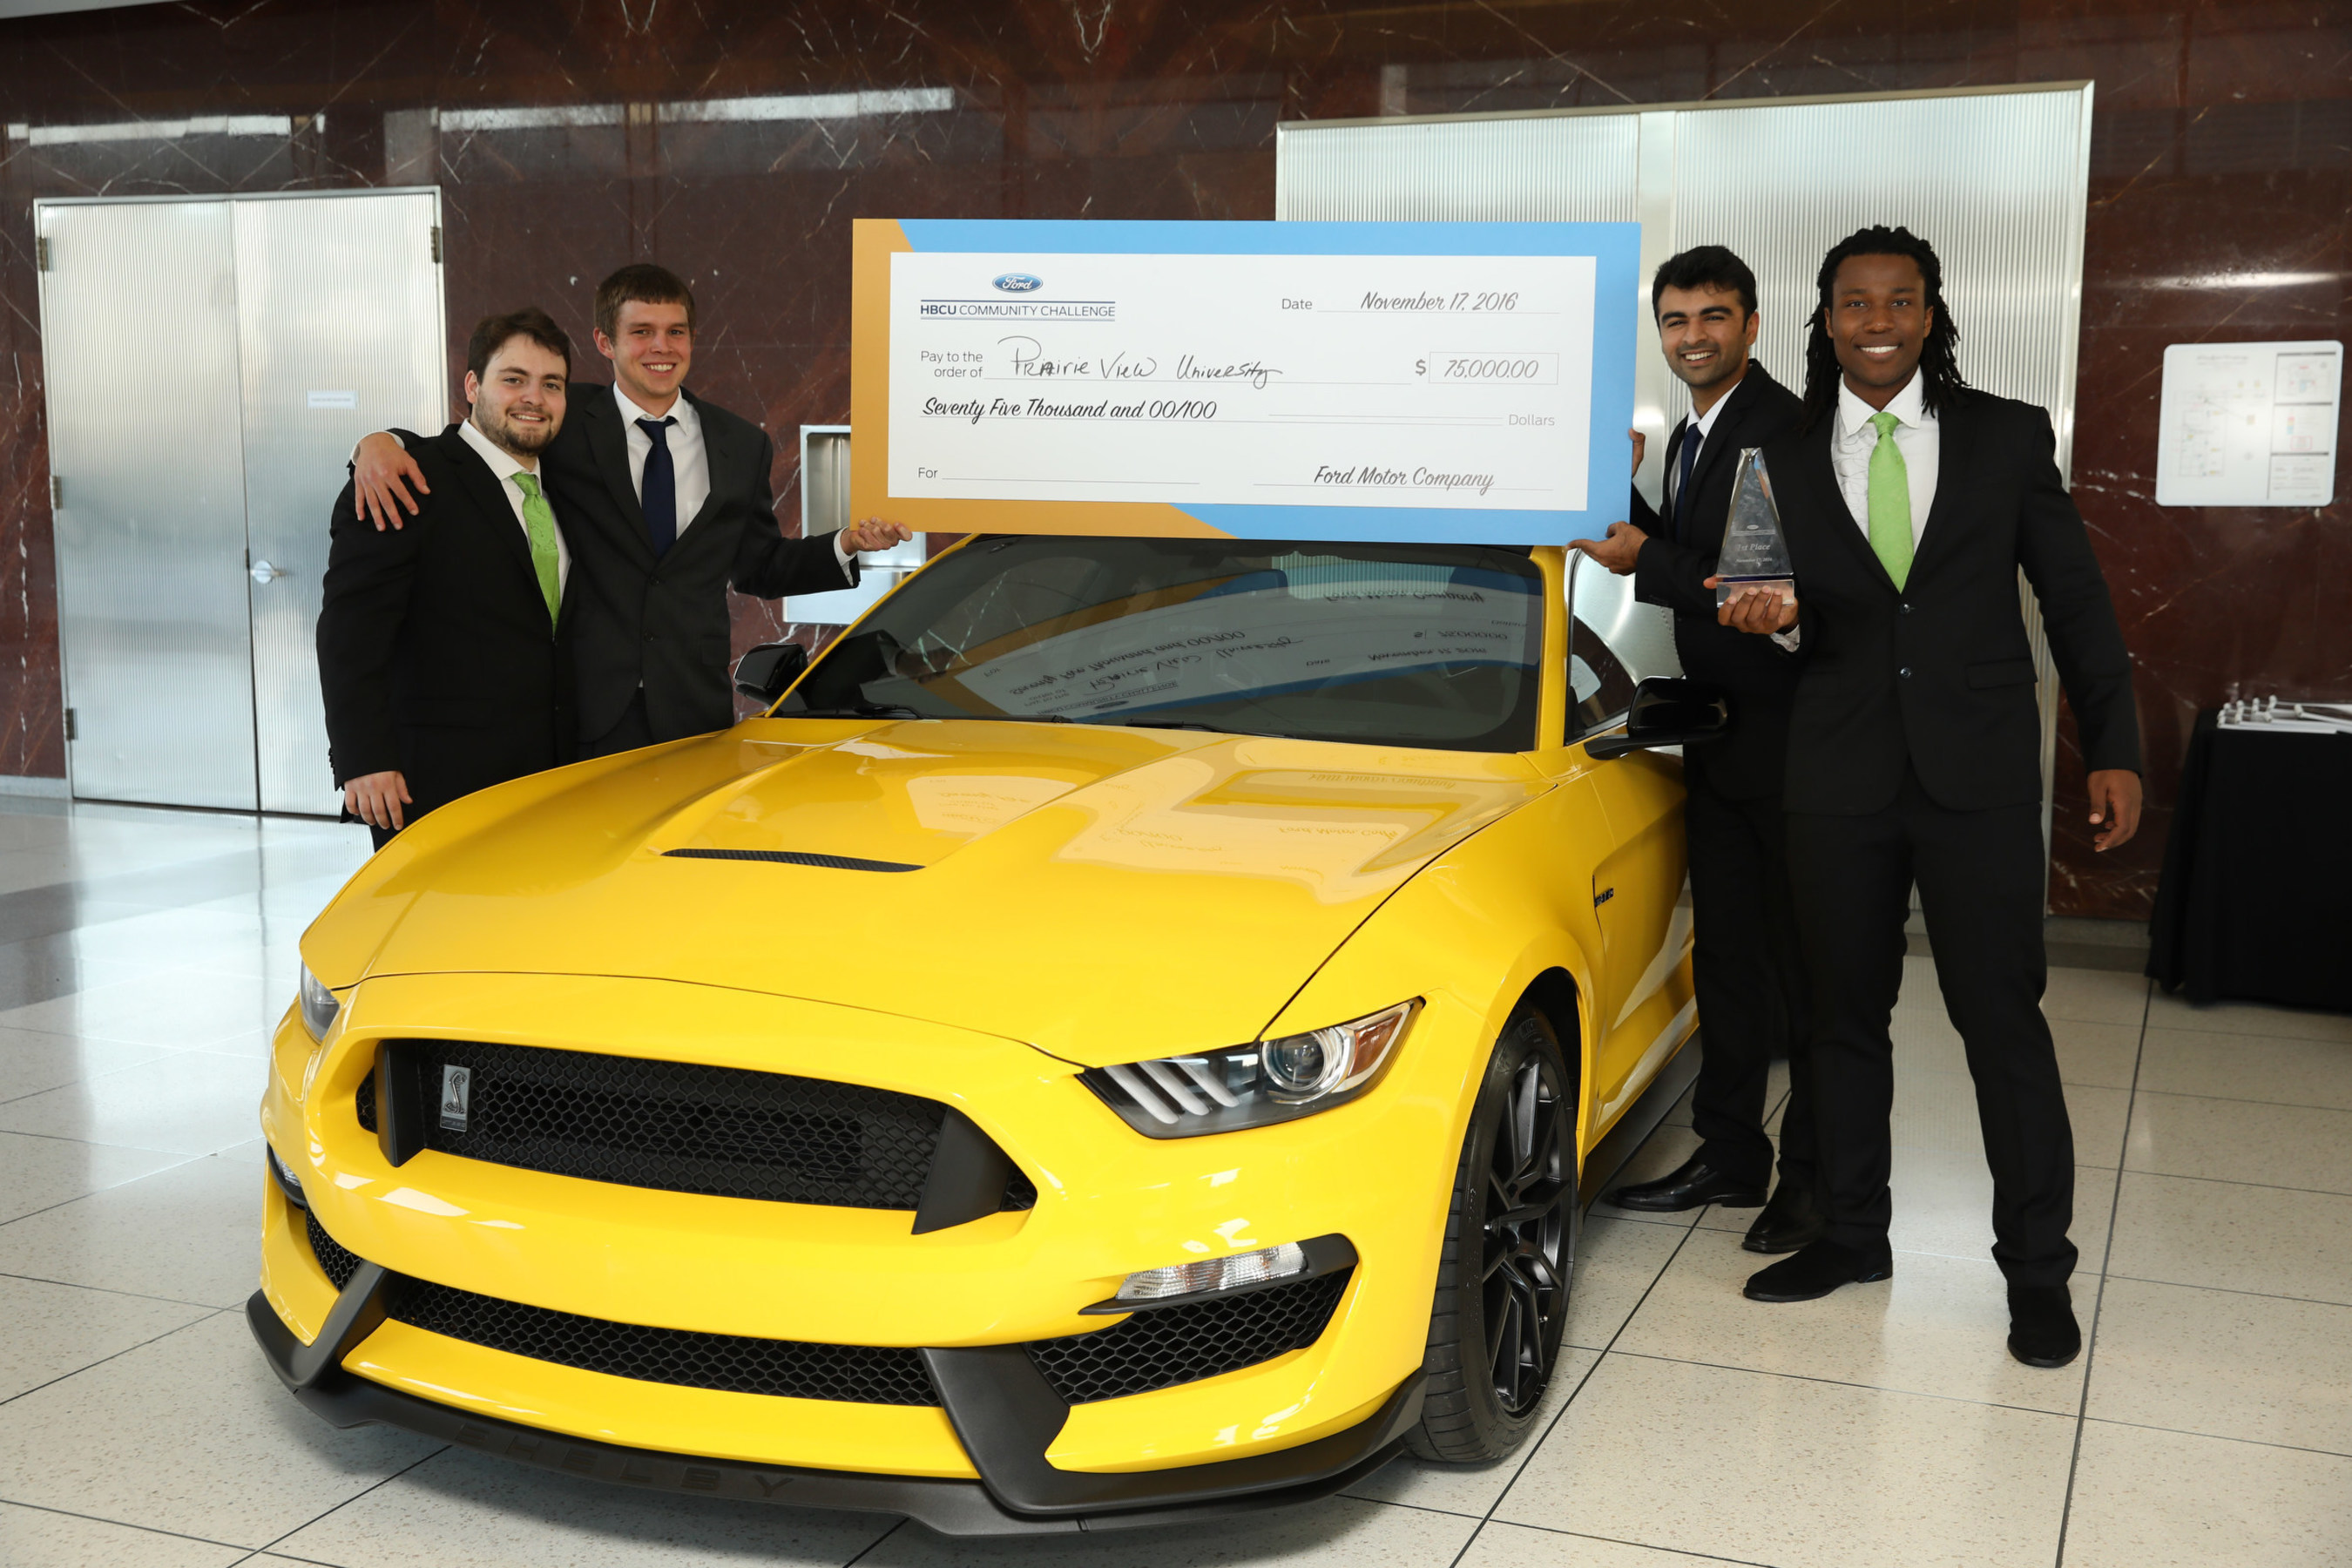 Students of Prairie View A&M University win 2016 Ford HBCU Community Challenge after presenting innovative app in front of judges including Tom Joyner and Henry Ford III at Ford World Headquarters.